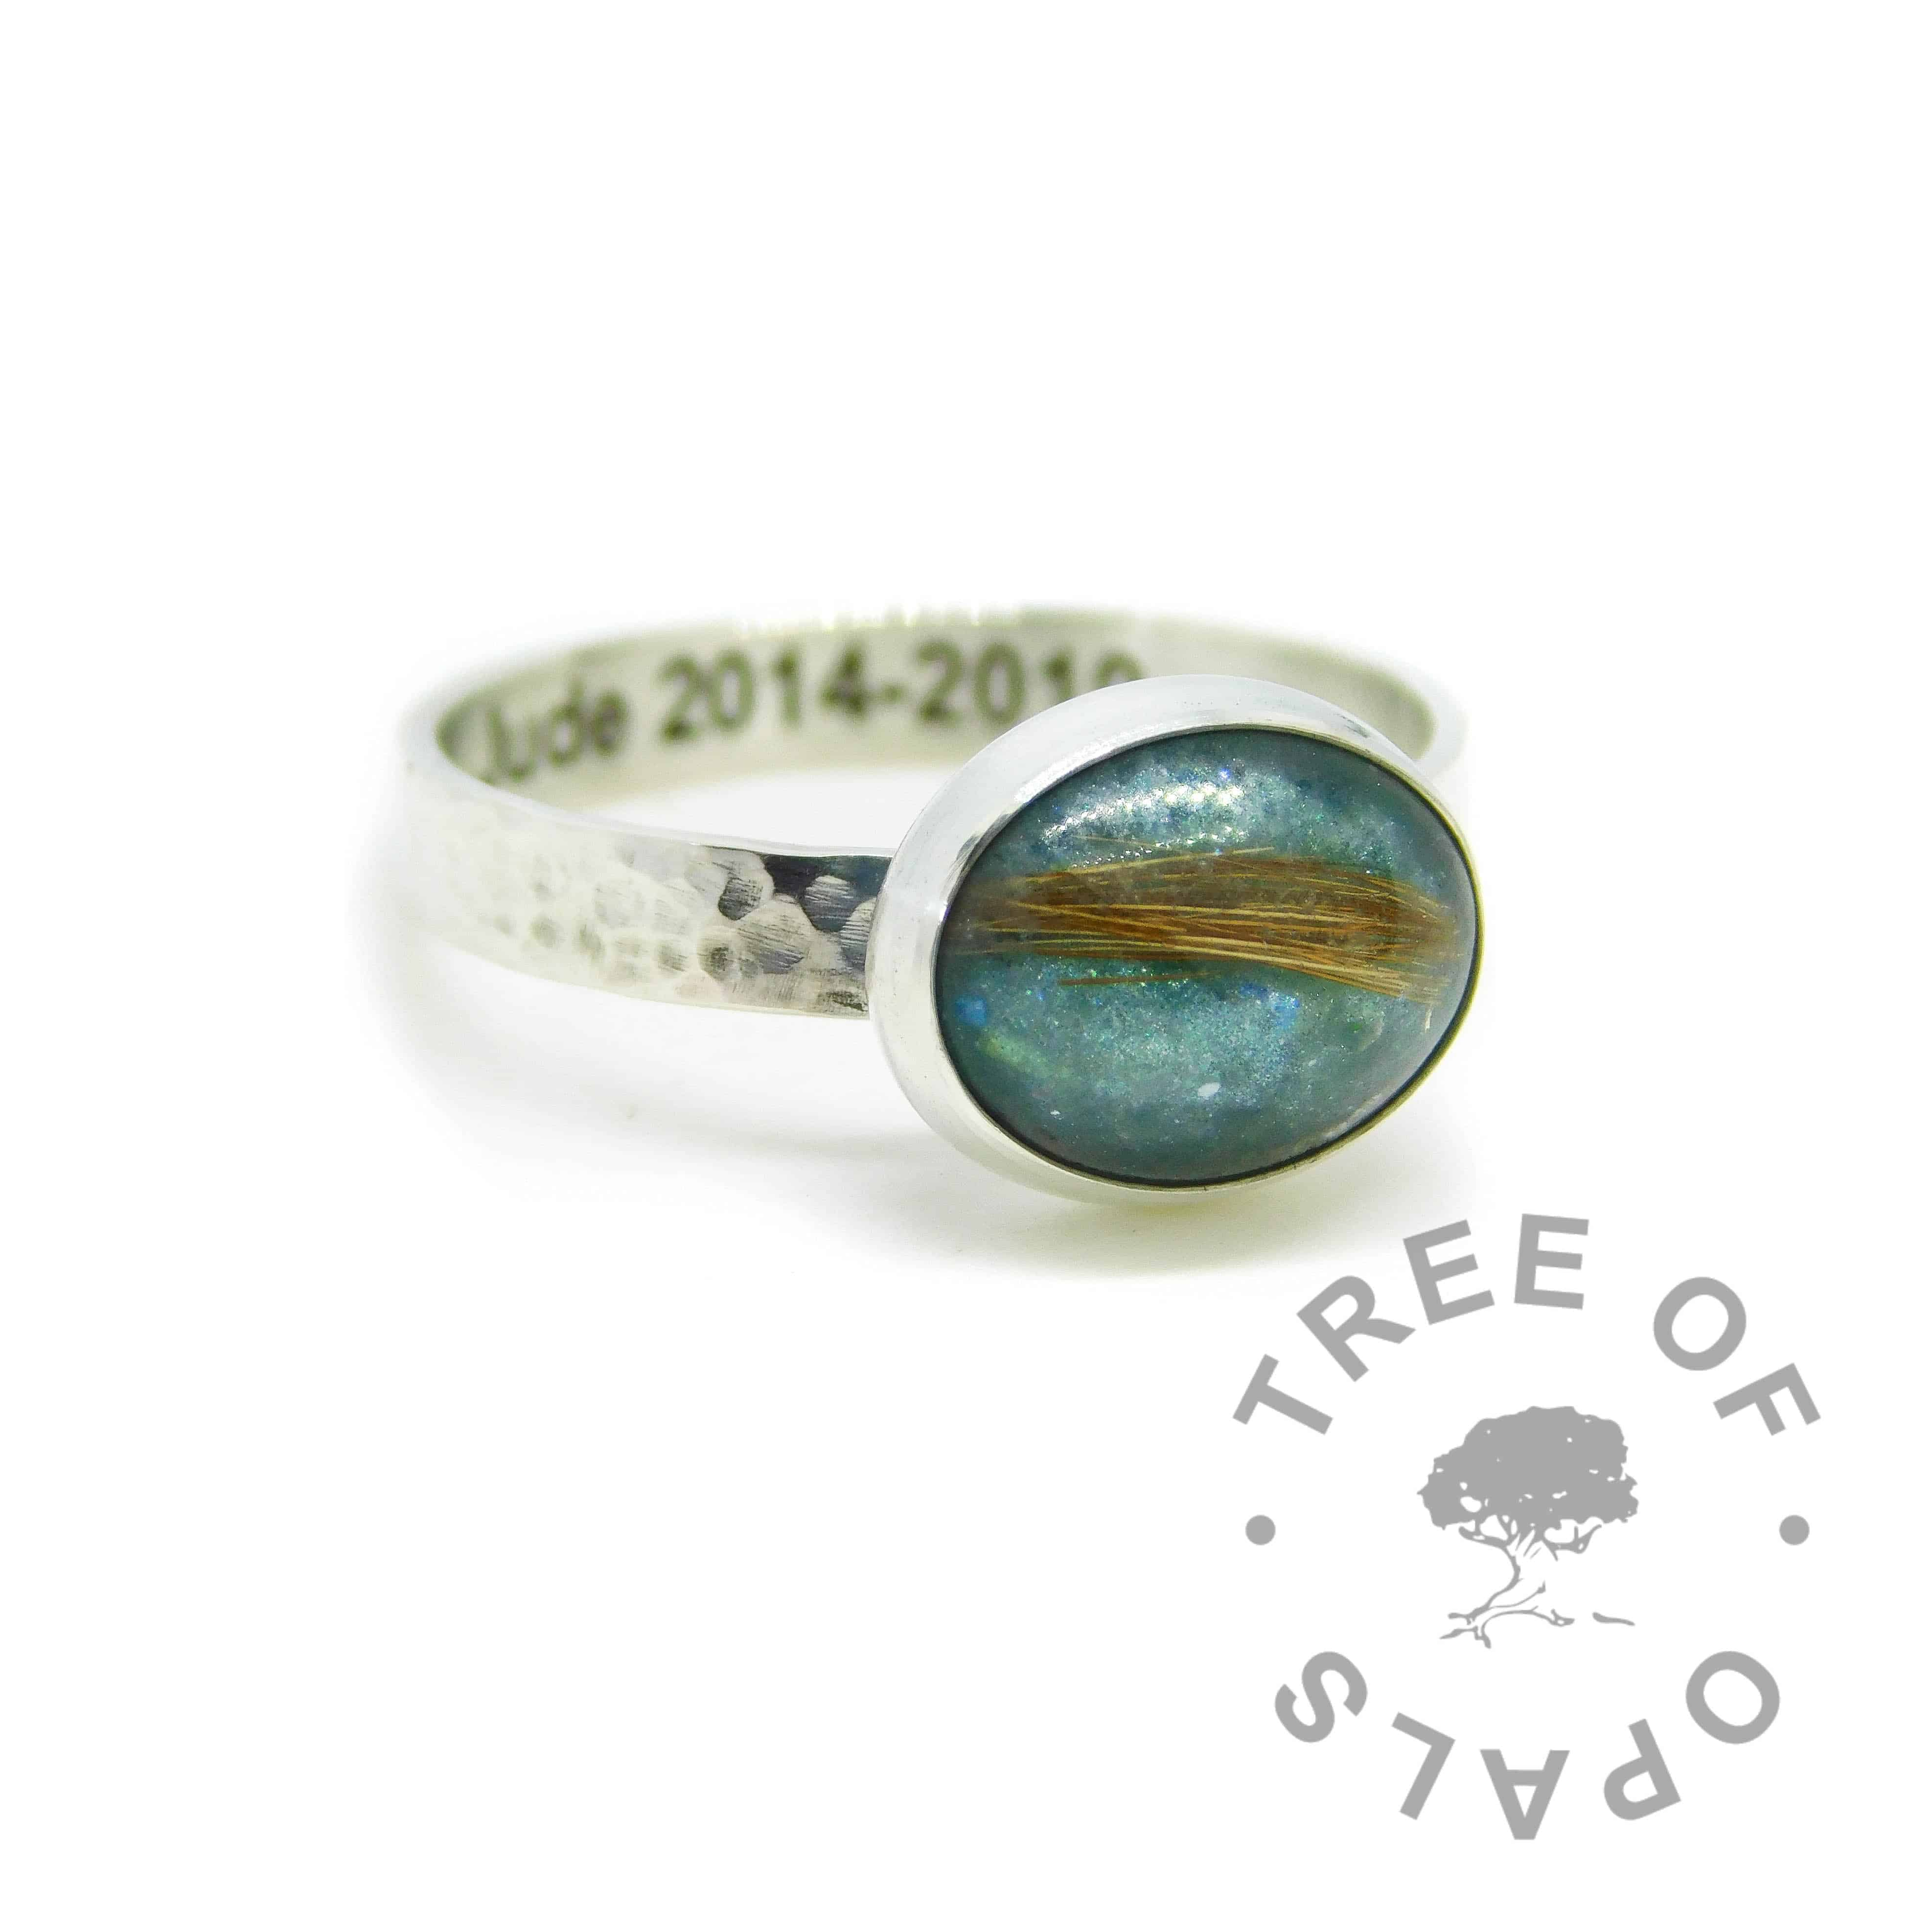 Engraved textured band lock of hair fur ring with mermaid teal resin sparkle mix and strawberry blonde hair. Engraved inside in Arial font. Handmade solid sterling silver memorial ring